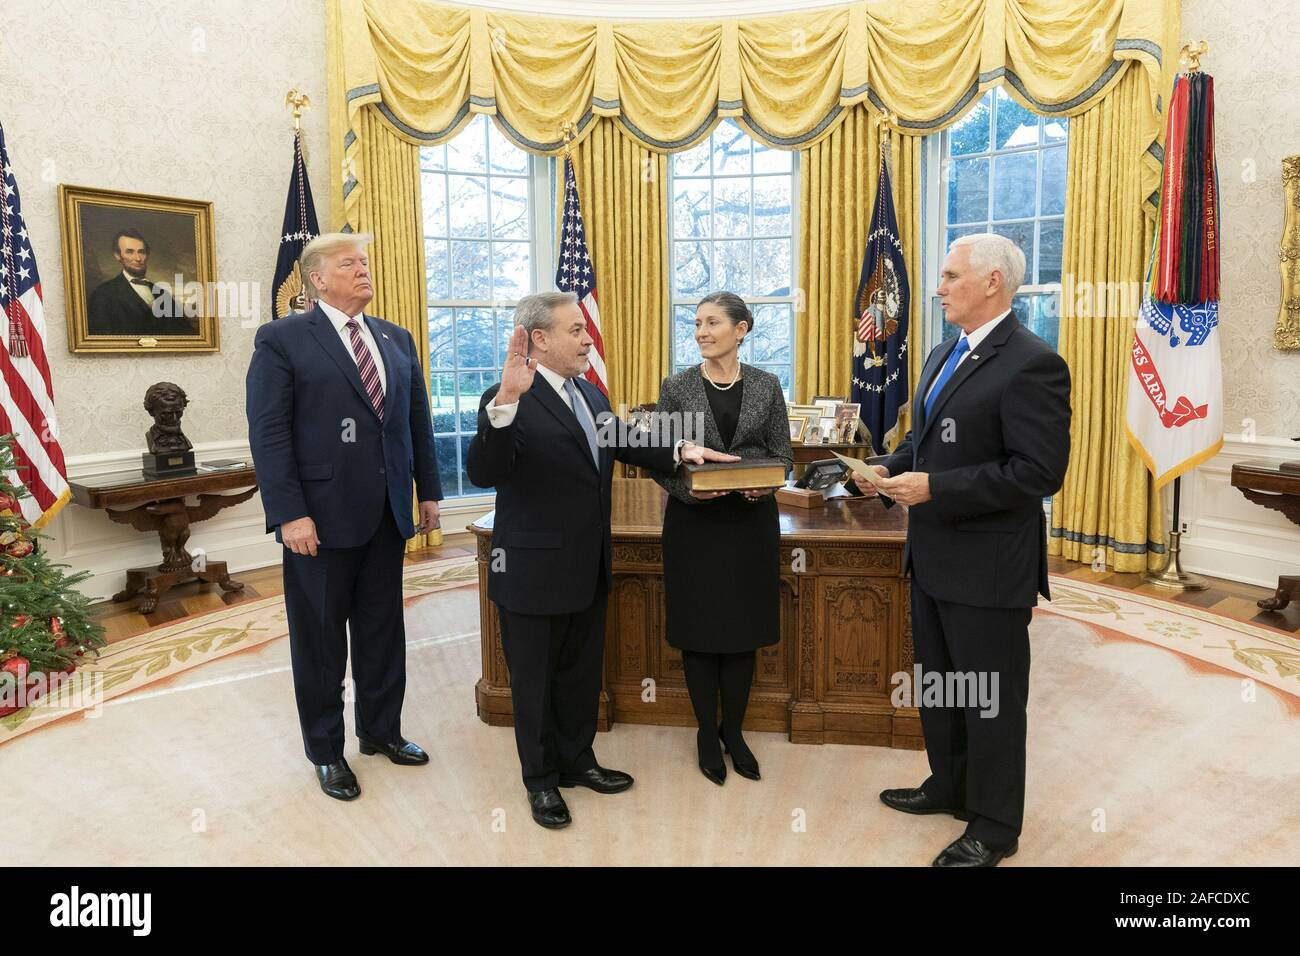 Washington, United States Of America. 11th Dec, 2019. President Donald J. Trump and Adrienne Brouillette look on as Vice President Mike Pence swears in Secretary of Energy Dan Brouillette Wednesday, Dec. 11, 2019, in the Oval Office of the White House. People: President Donald J. Trump, Dan Brouillette Credit: Storms Media Group/Alamy Live News Stock Photo